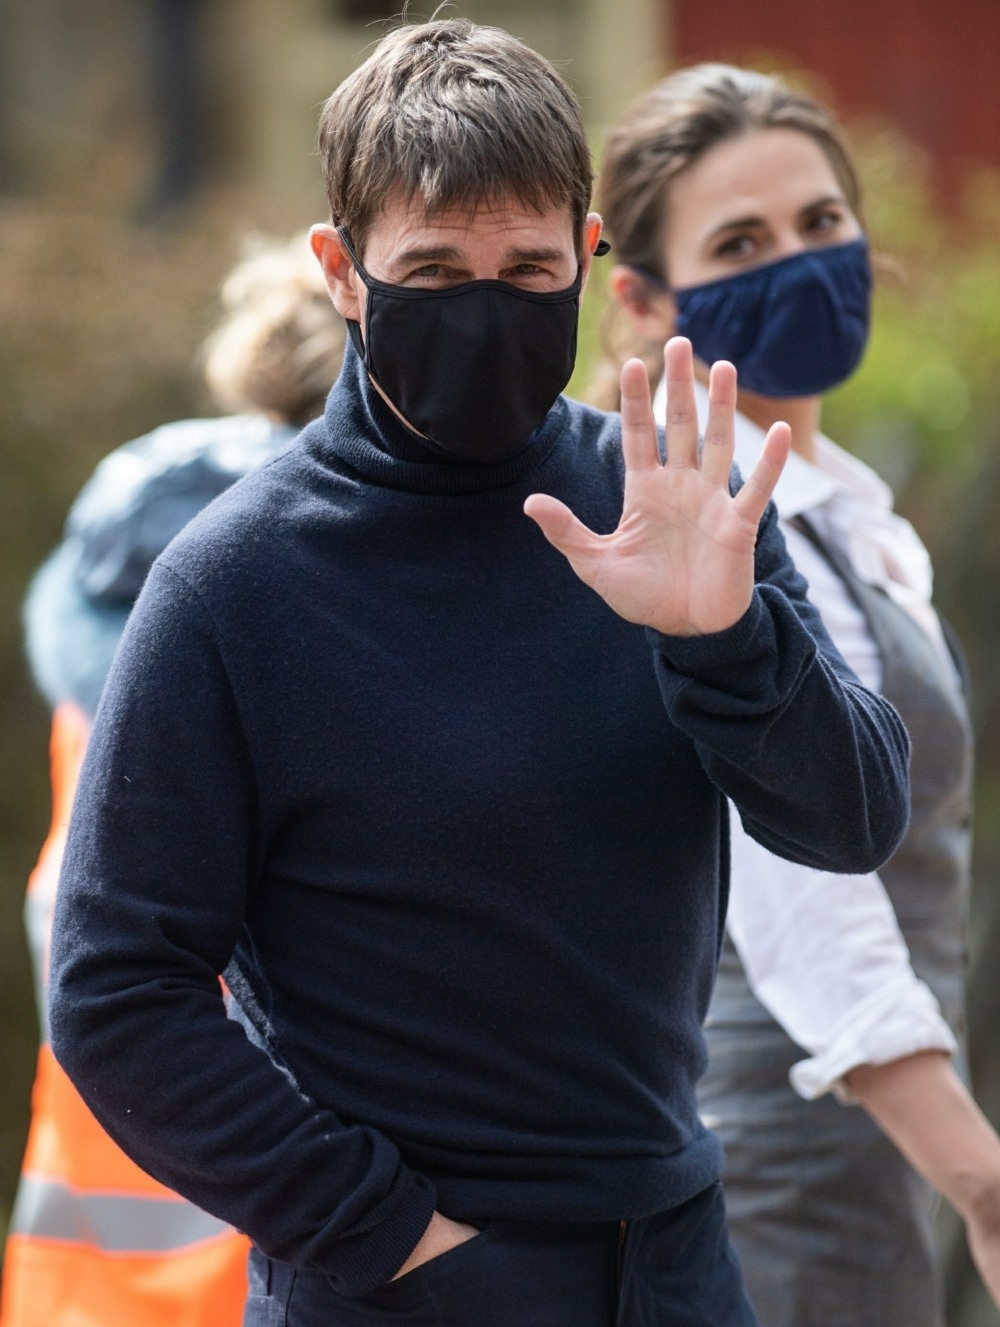 Tom Cruise and Hayley Atwell spotted on the set of Mission Impossible 7 in Yorkshire